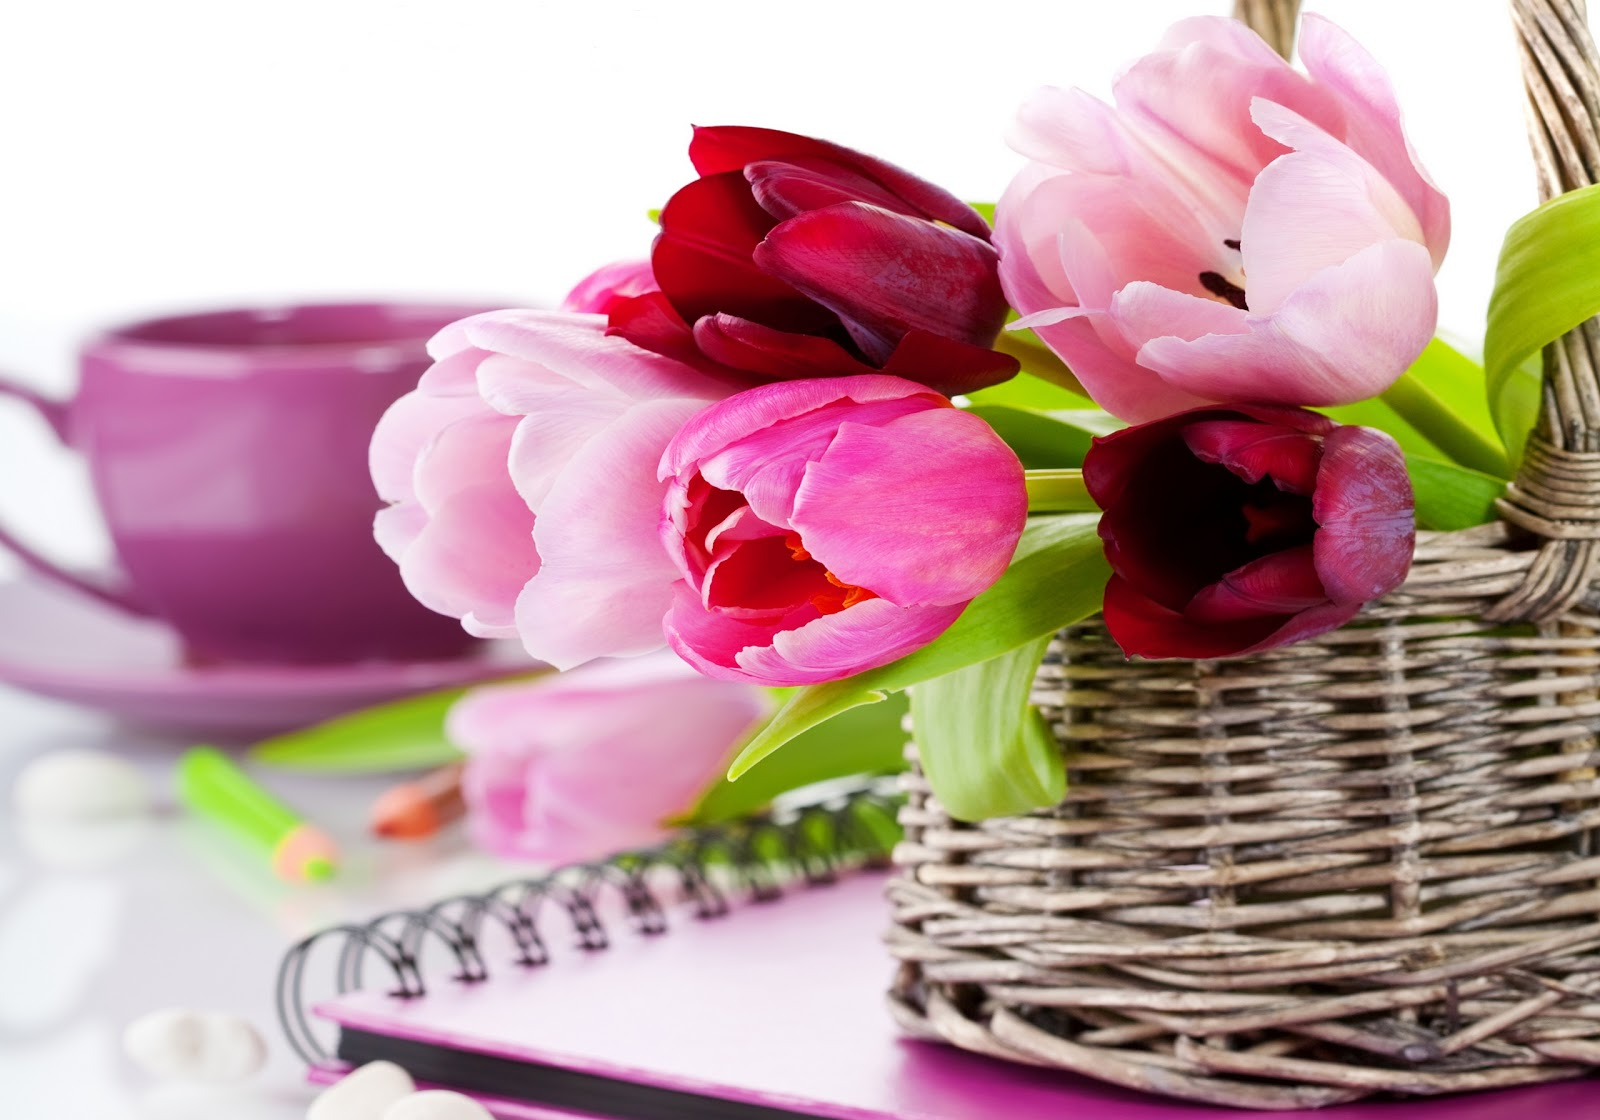 Beauty Flower Flowers Basket Wallpaper